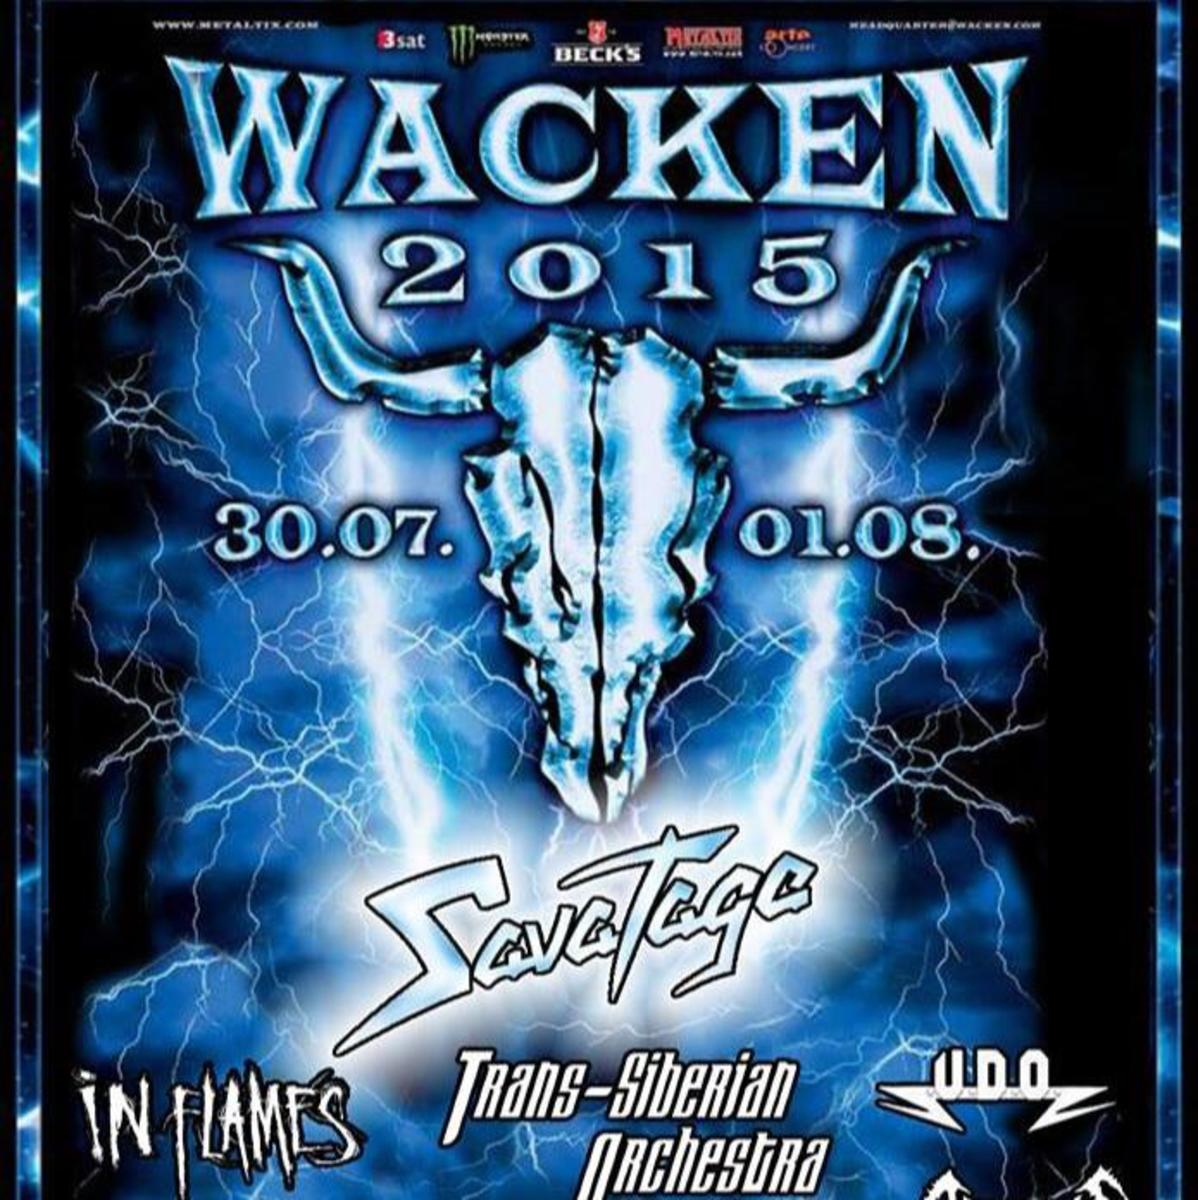 Promotional image for the 2015 Wacken festival